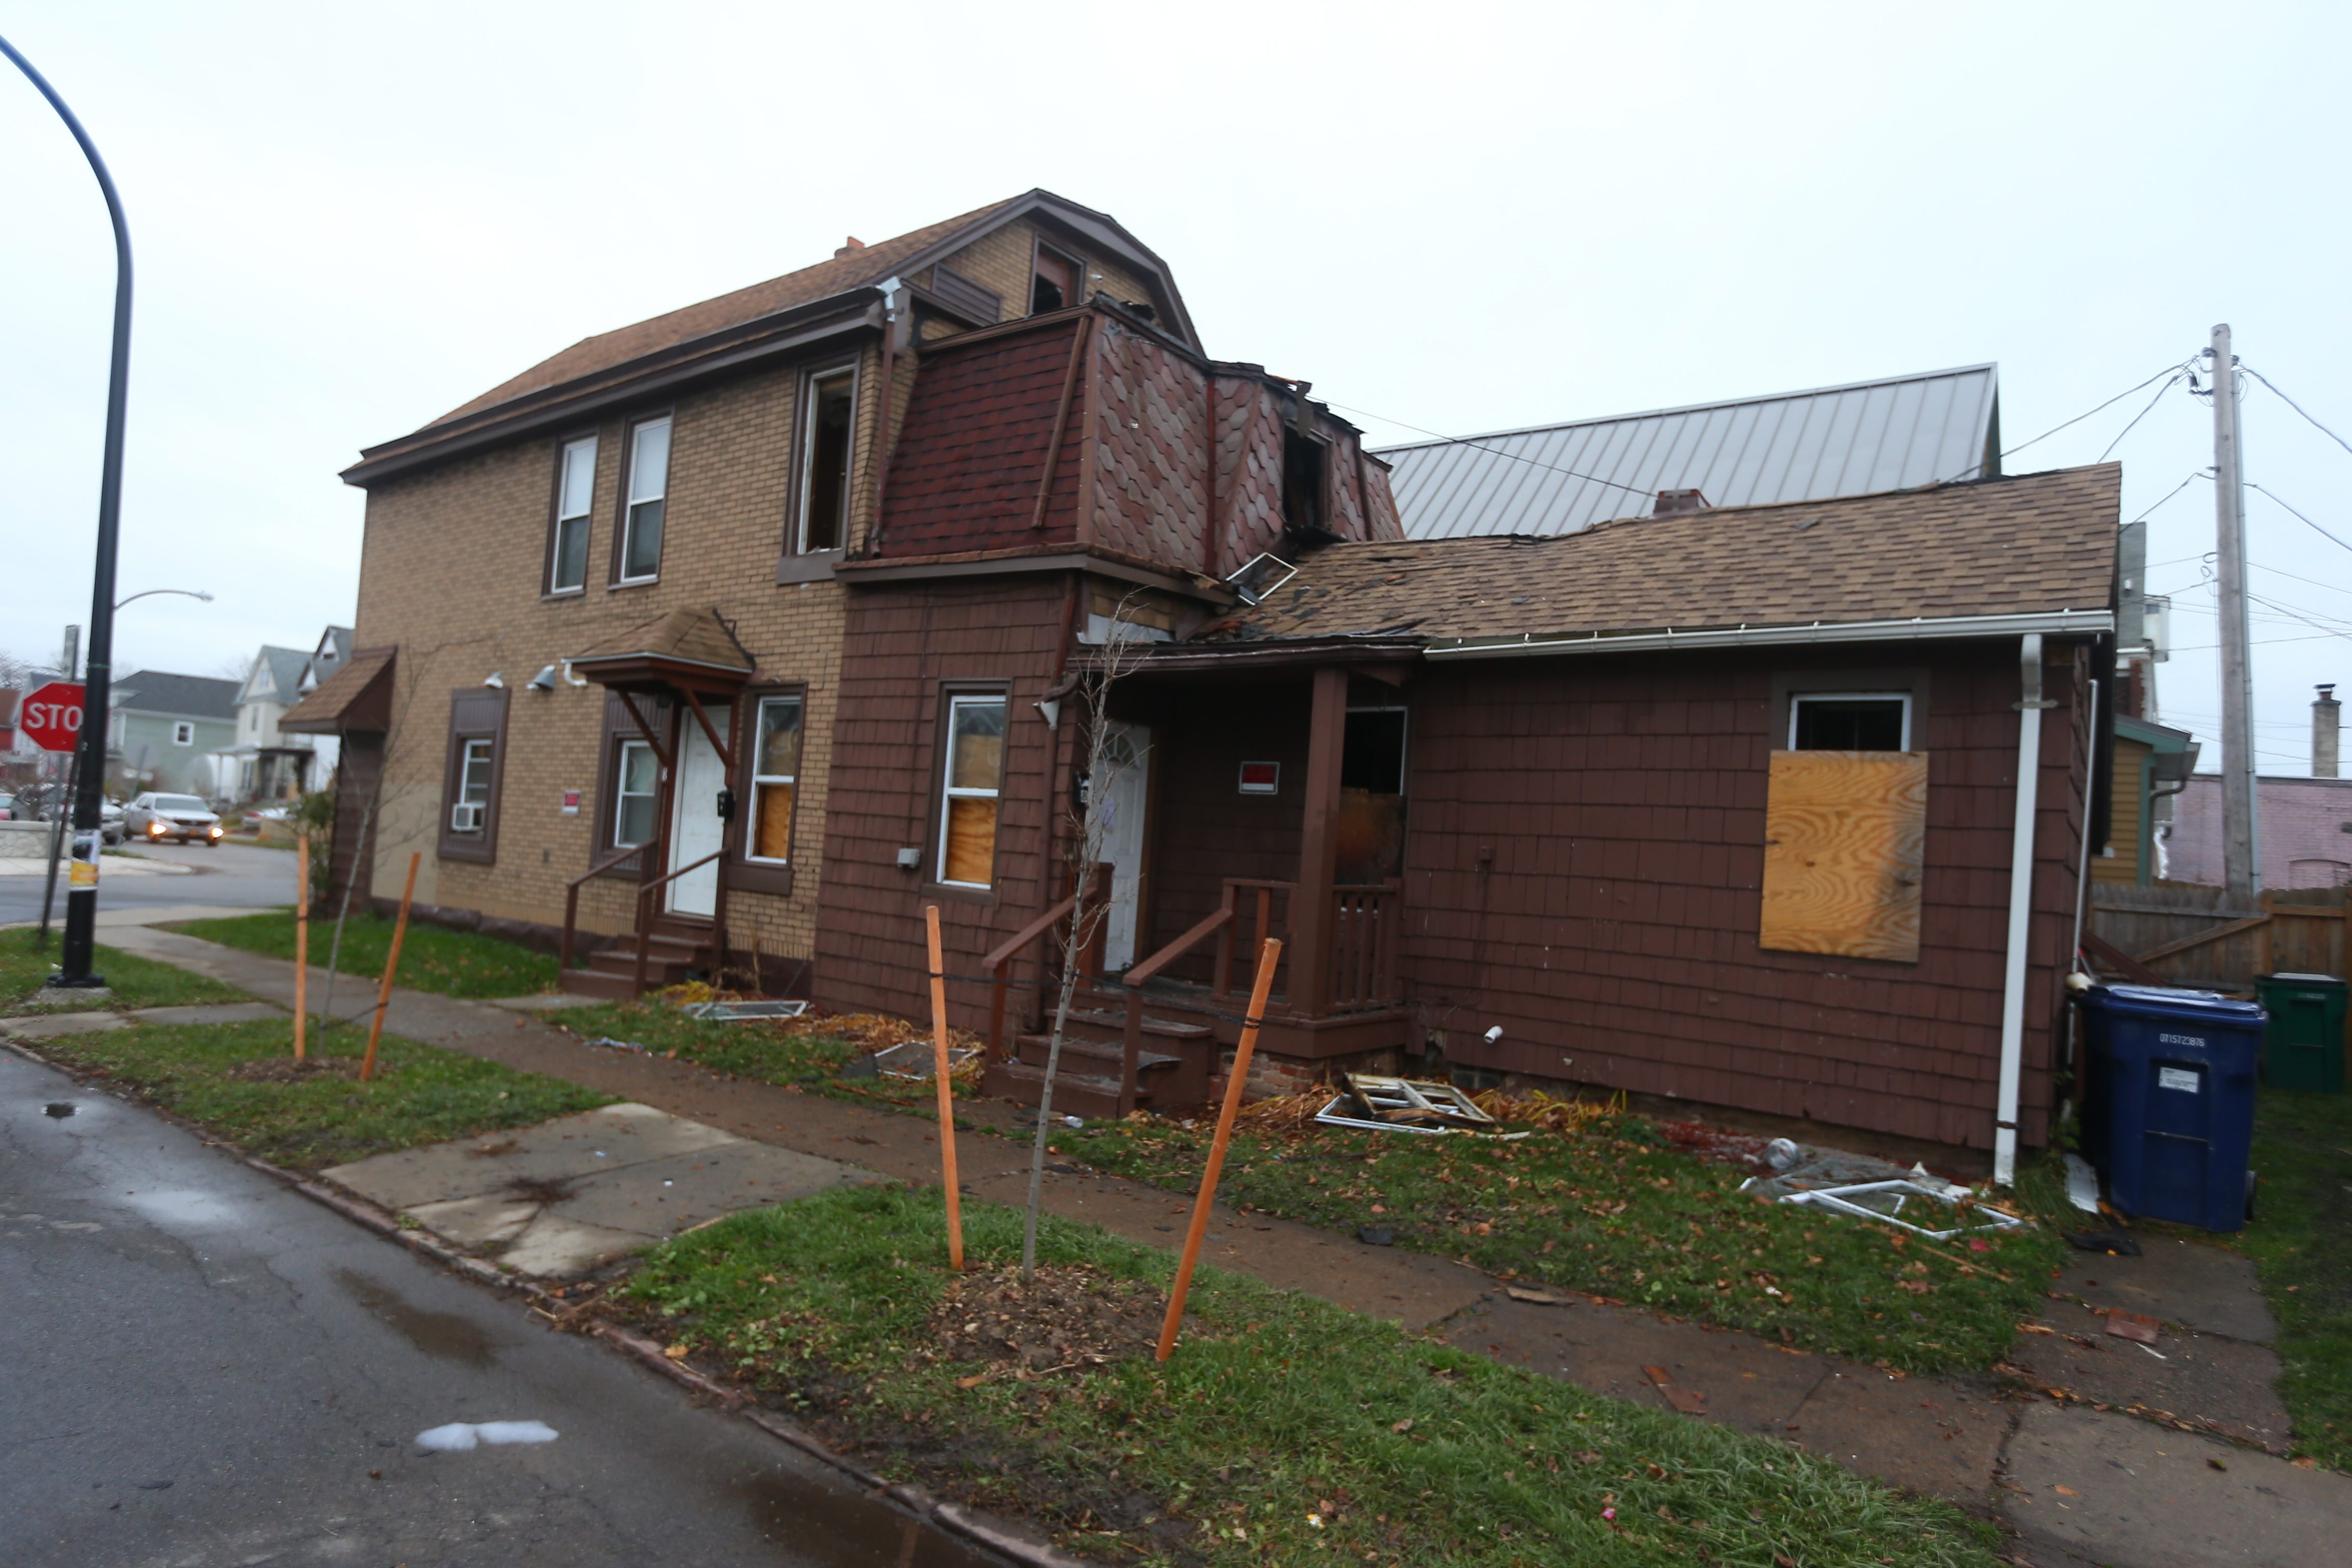 The Red Cross is helping four adults after fire struck a multiple-family home on Massachusetts Avenue Tuesday,  Dec. 1, 2015.   (John Hickey/Buffalo News)